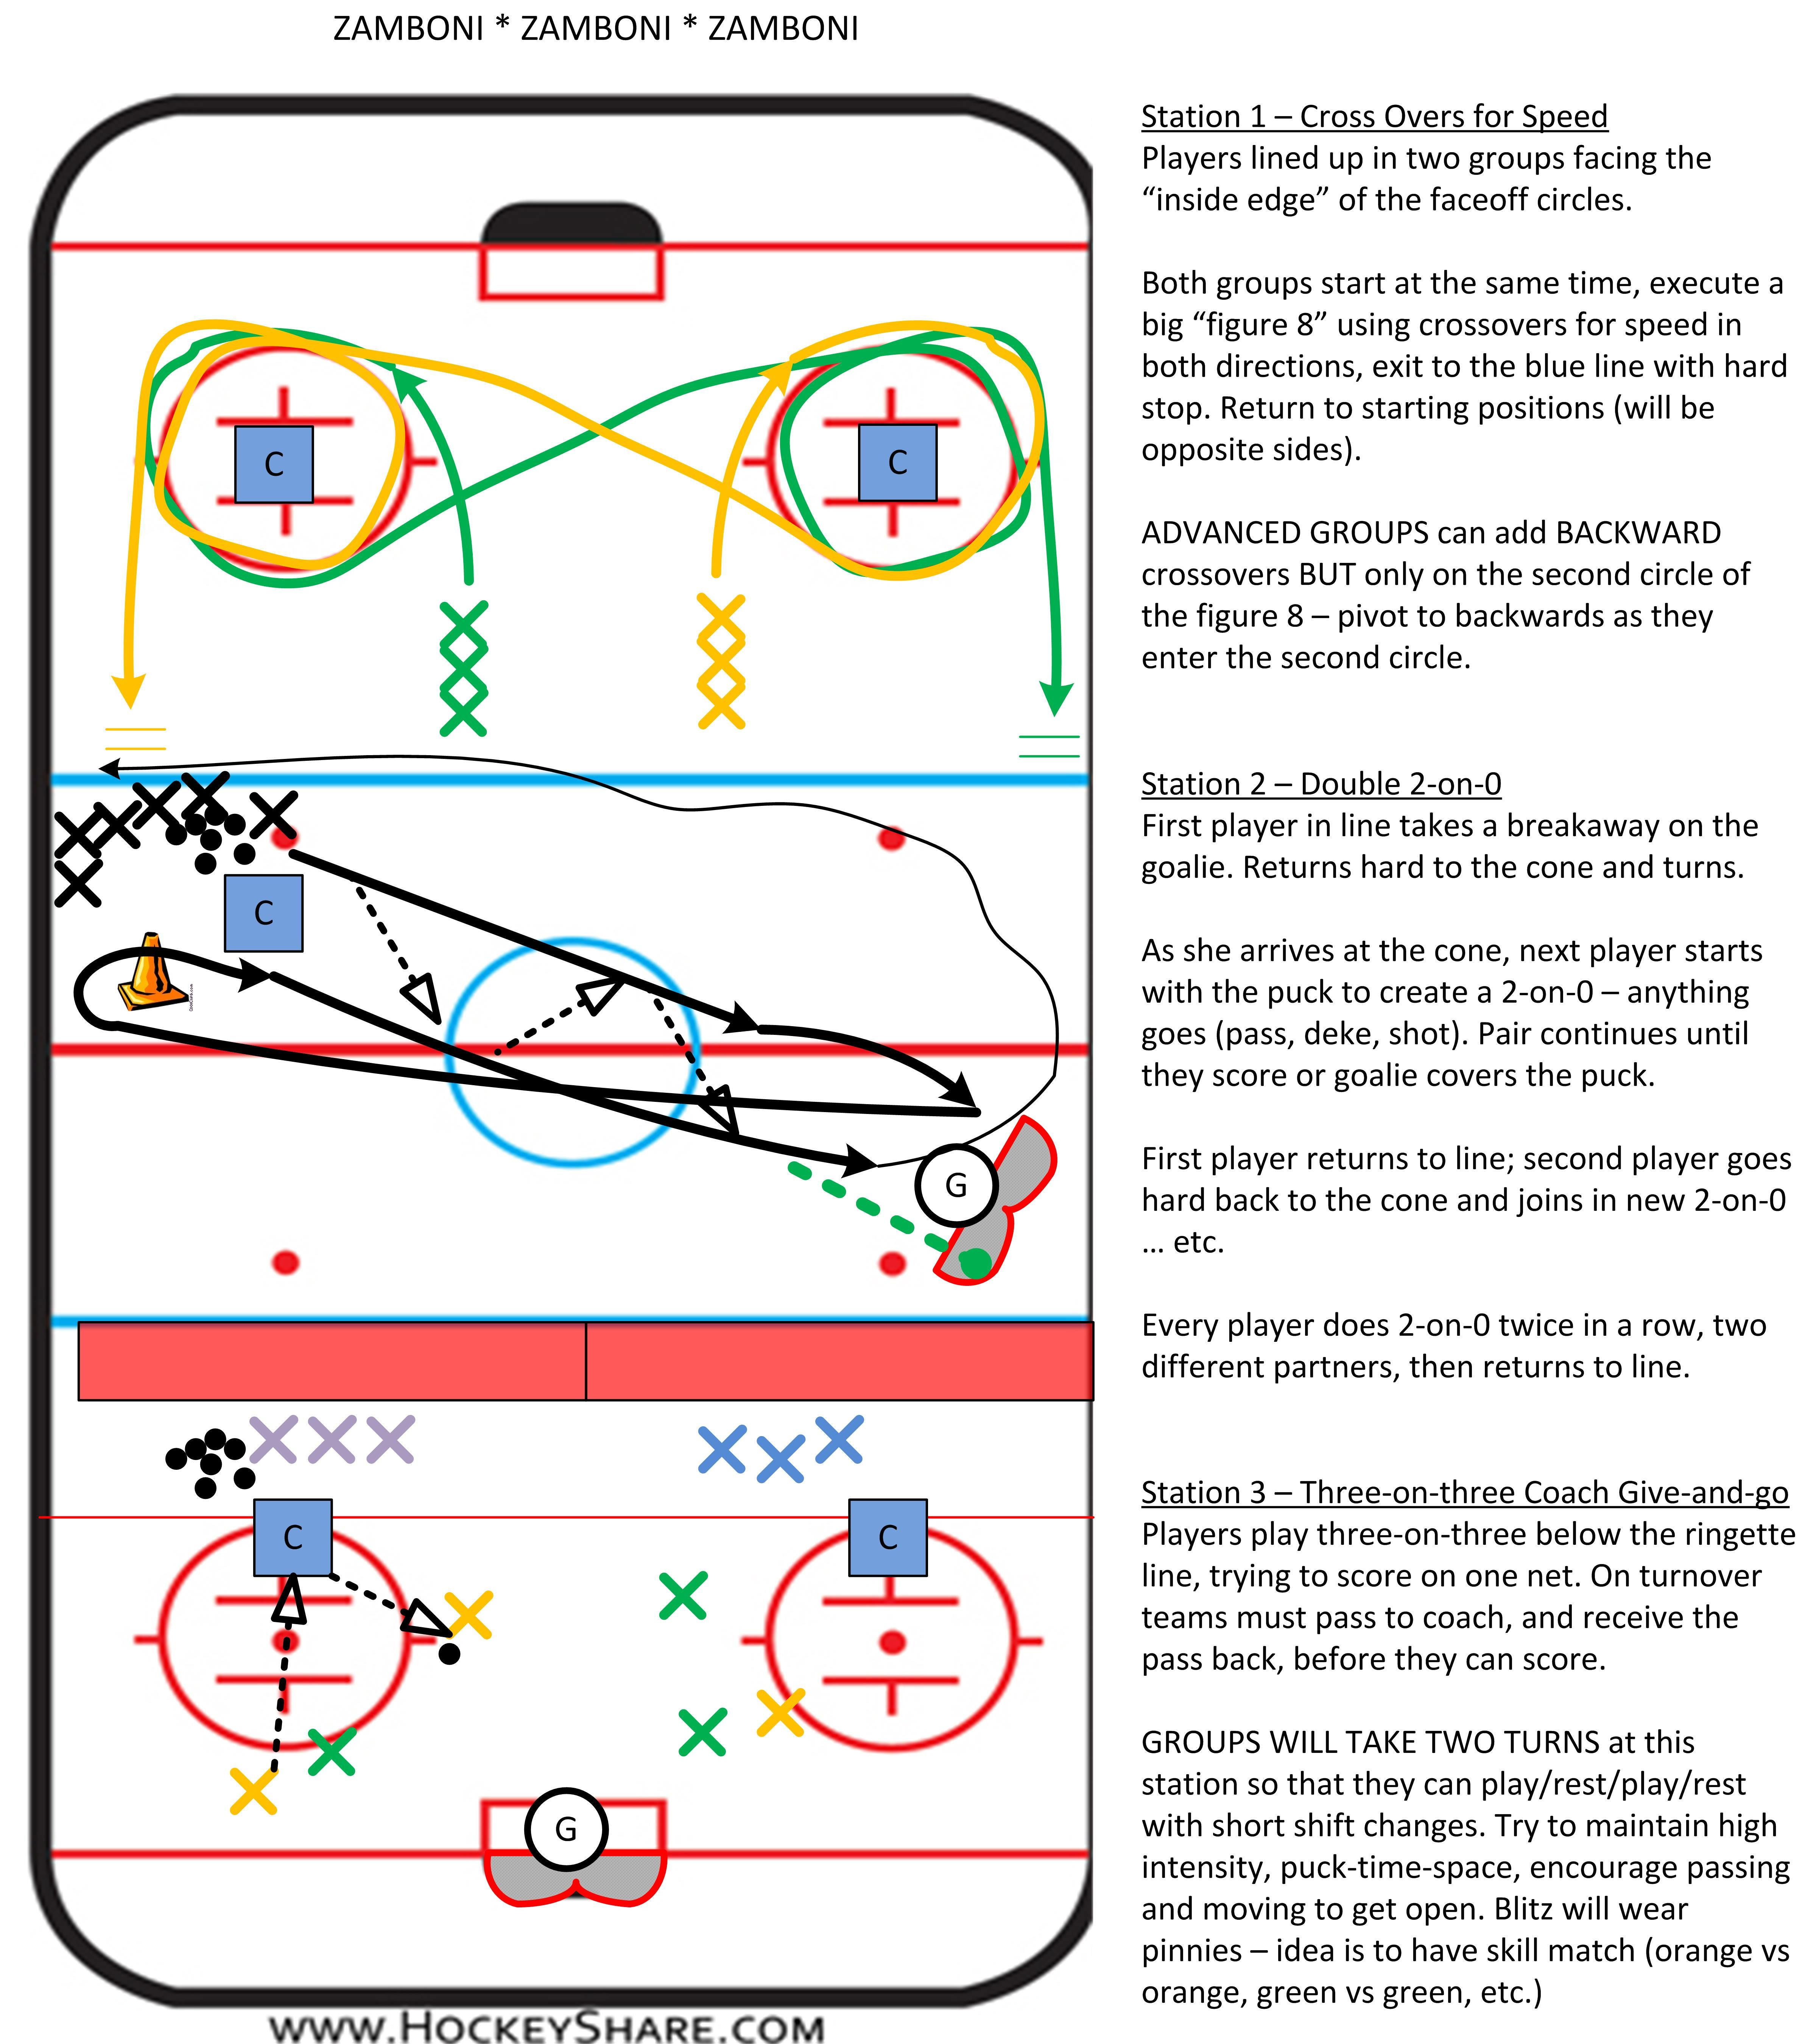 Full Ice Practice Plan For Novice U8 One Station Is A Small Area